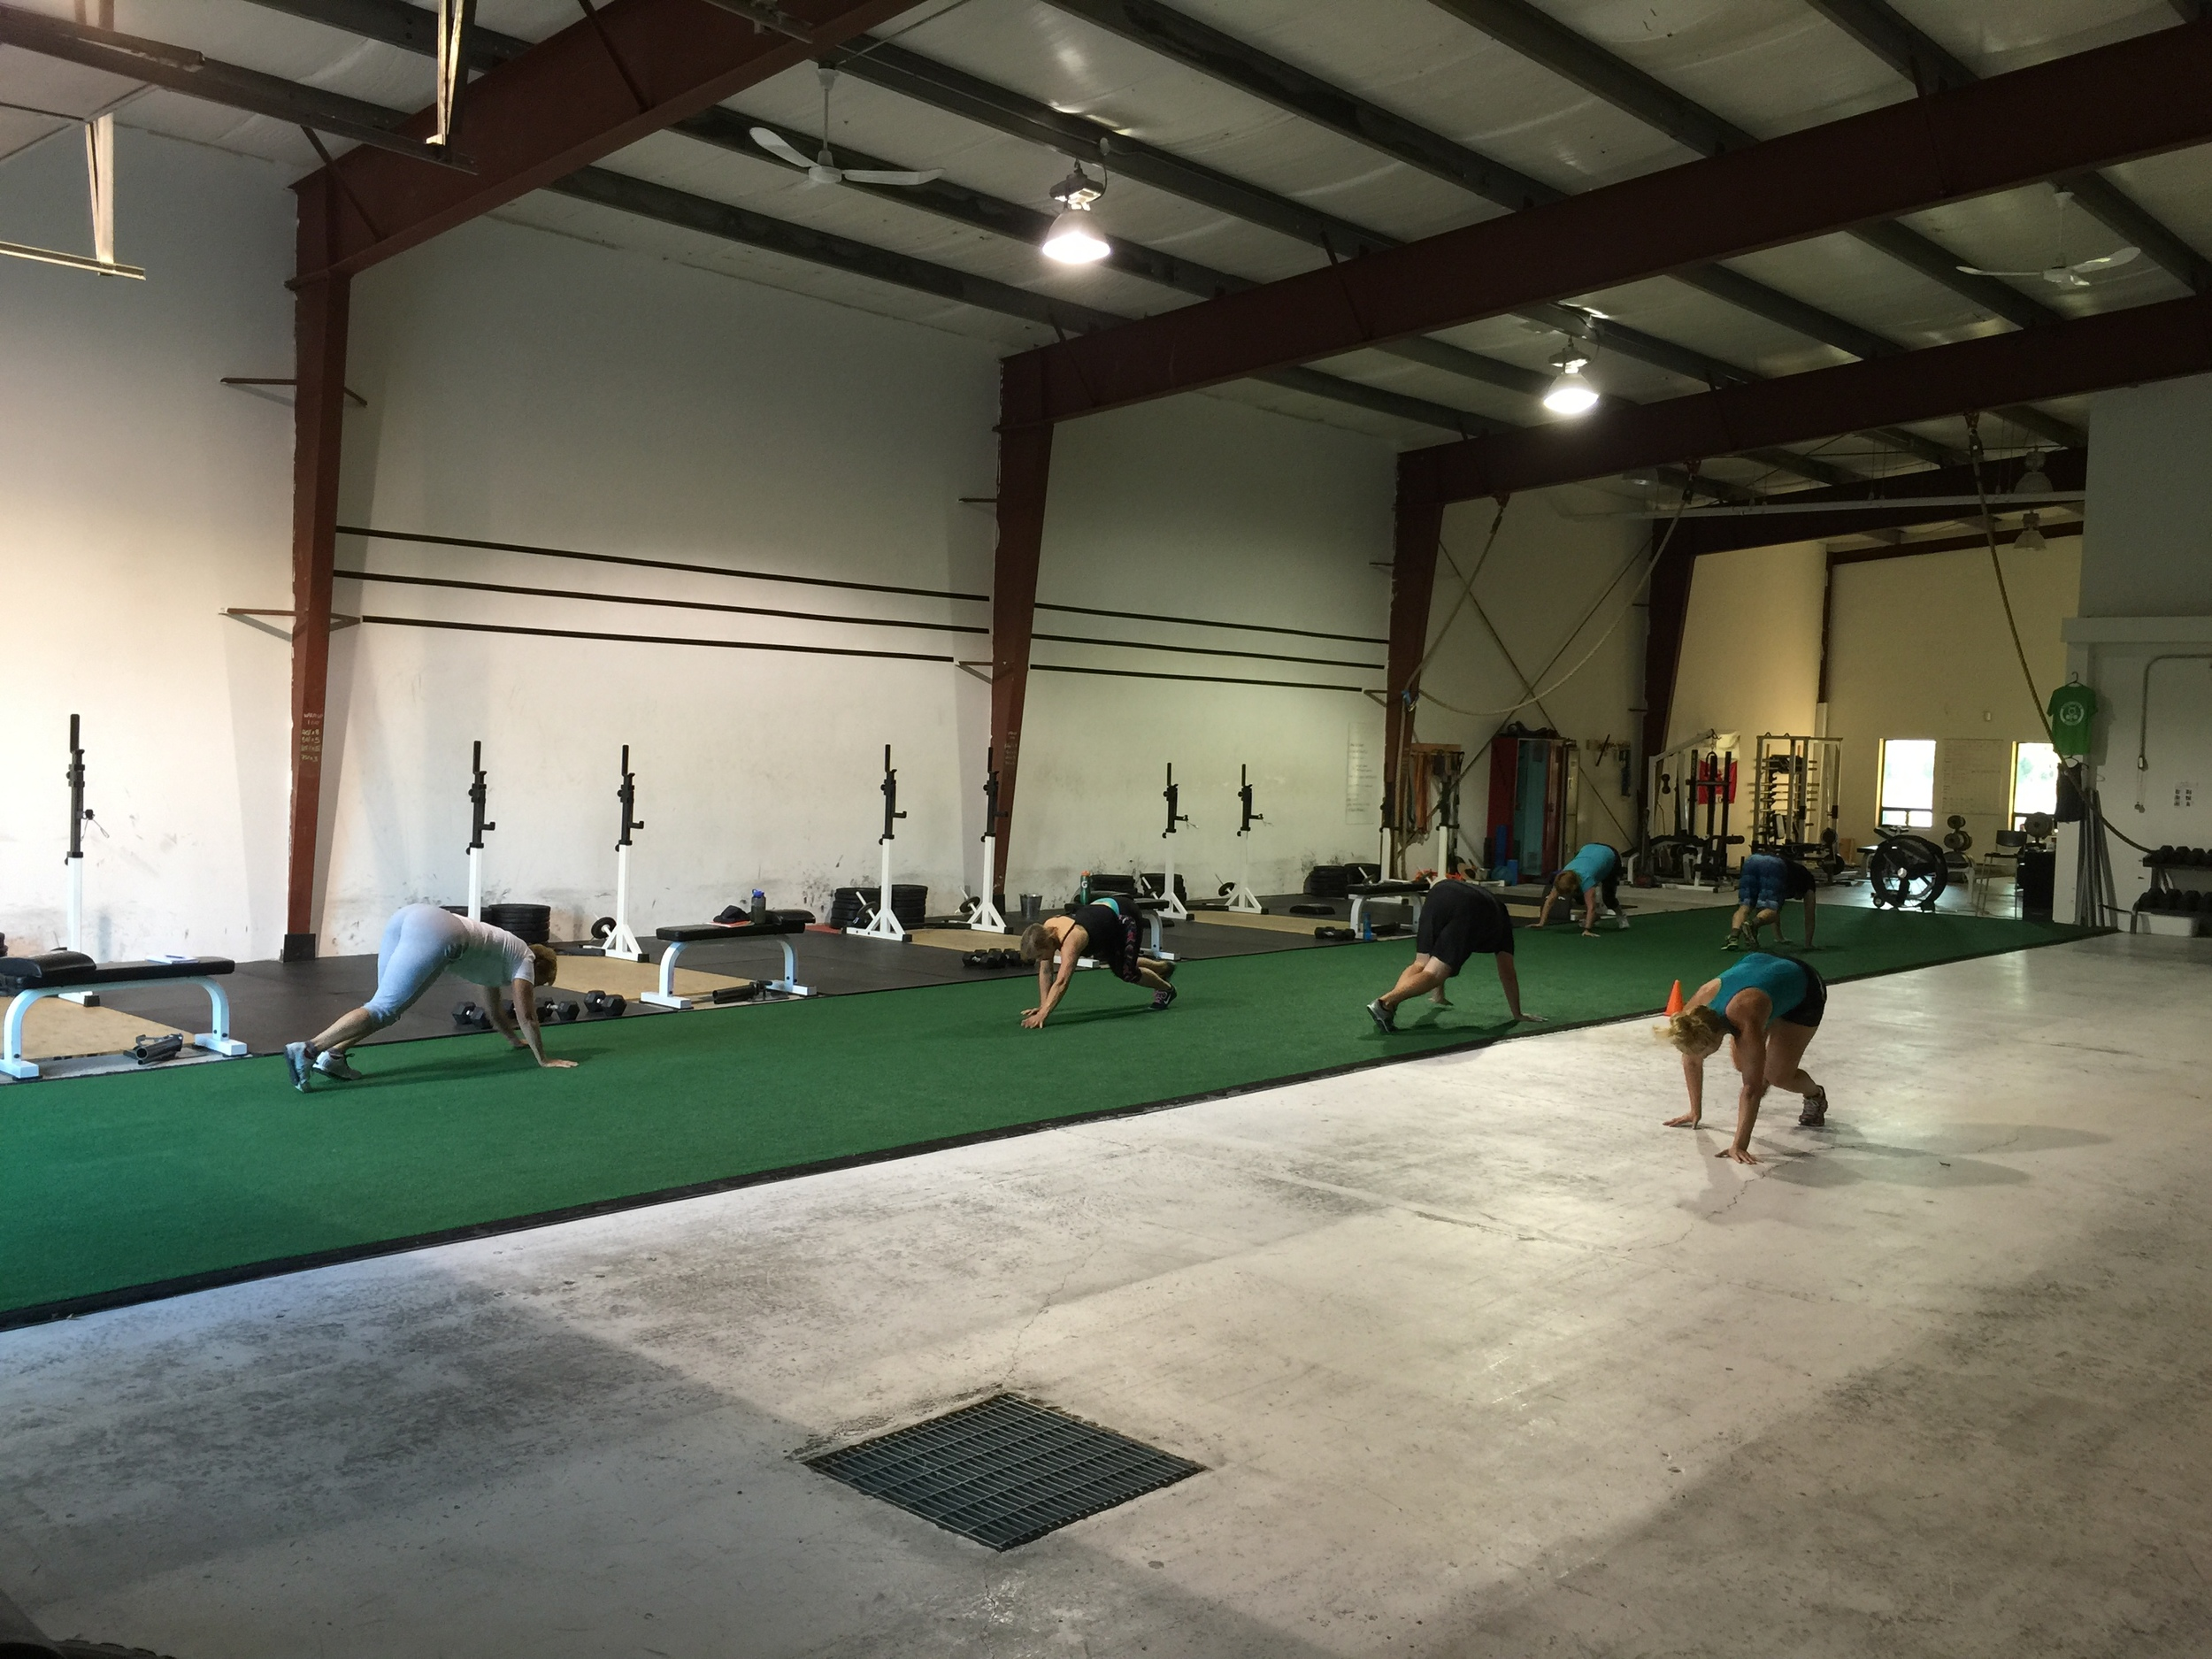 Some bear crawl action from the 06:30 group this morning